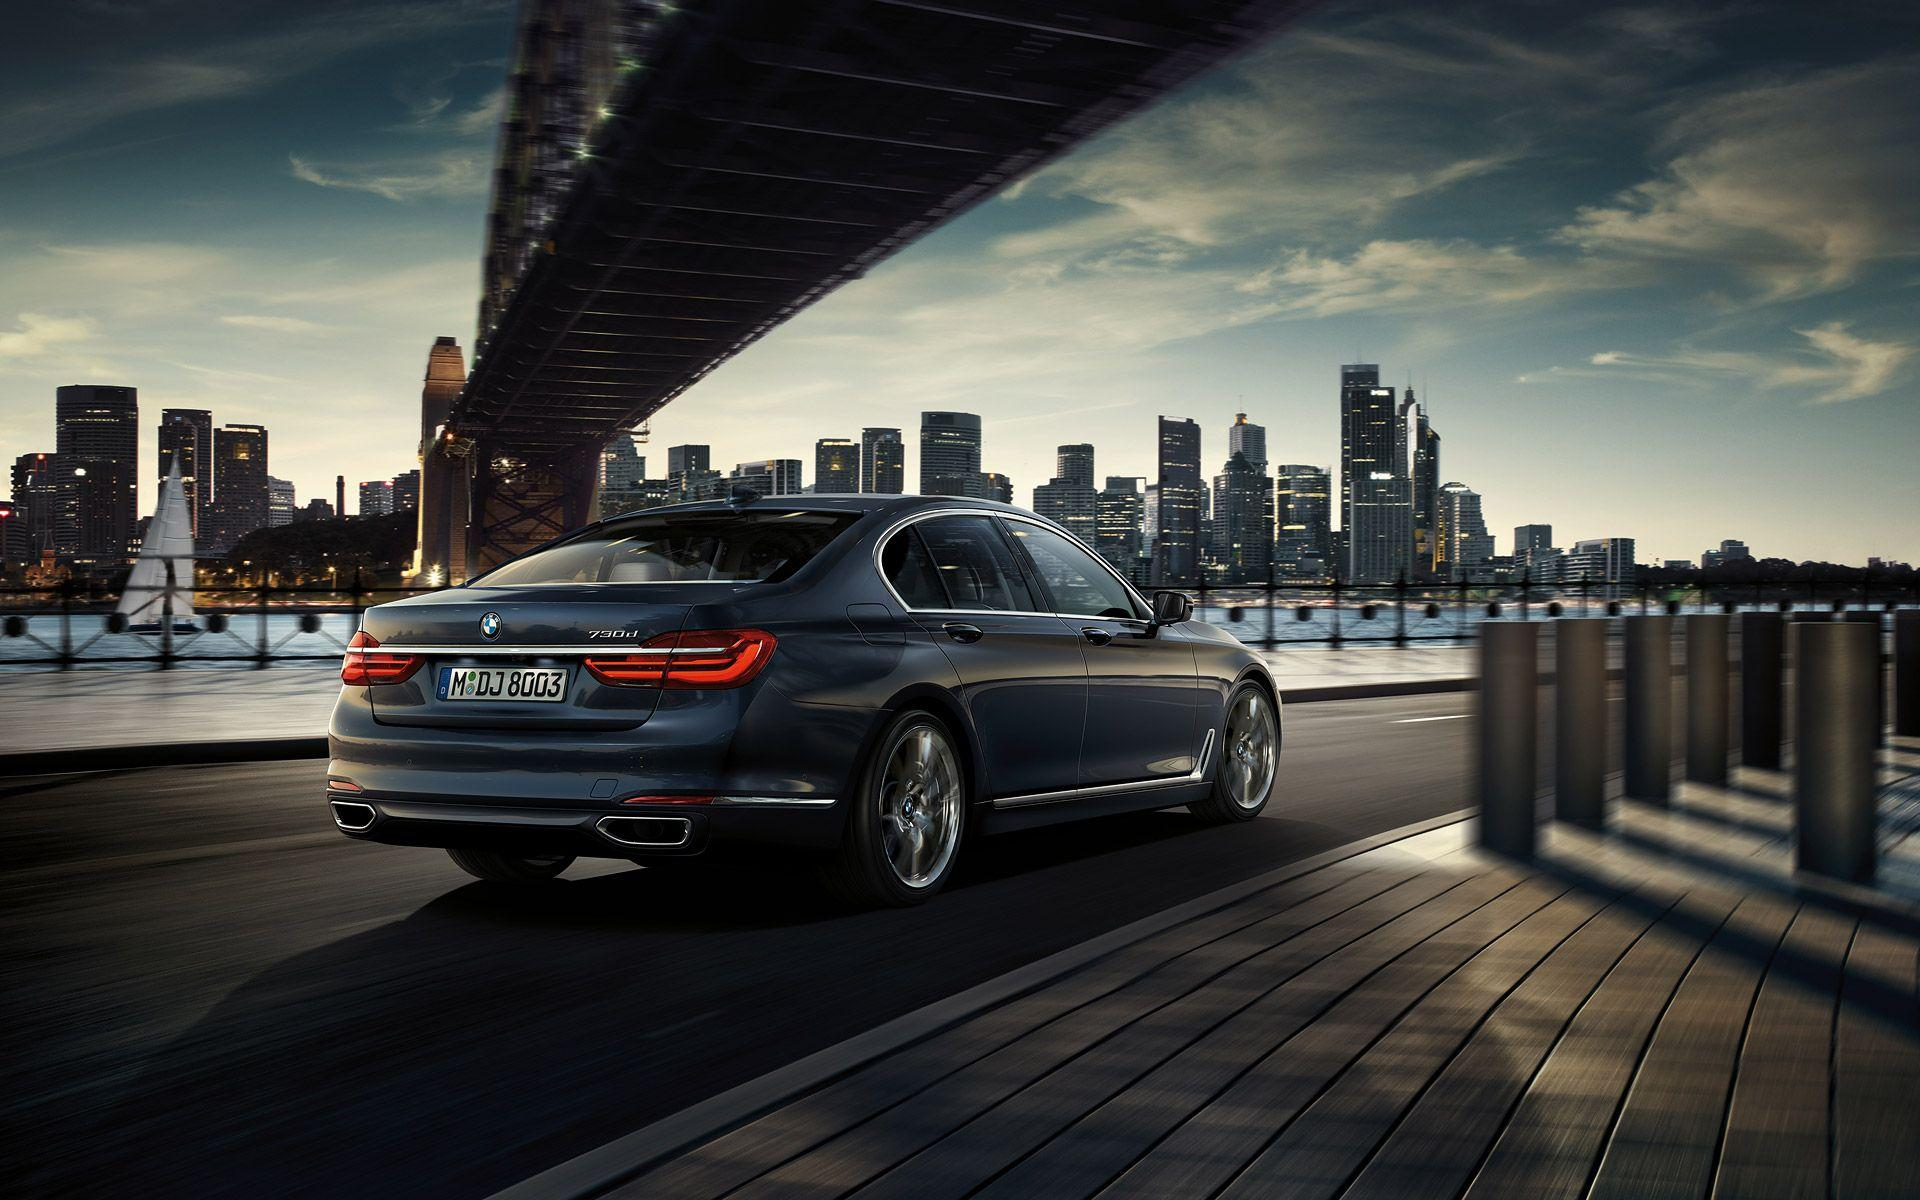 wallpapers 2016 BMW 7 Series